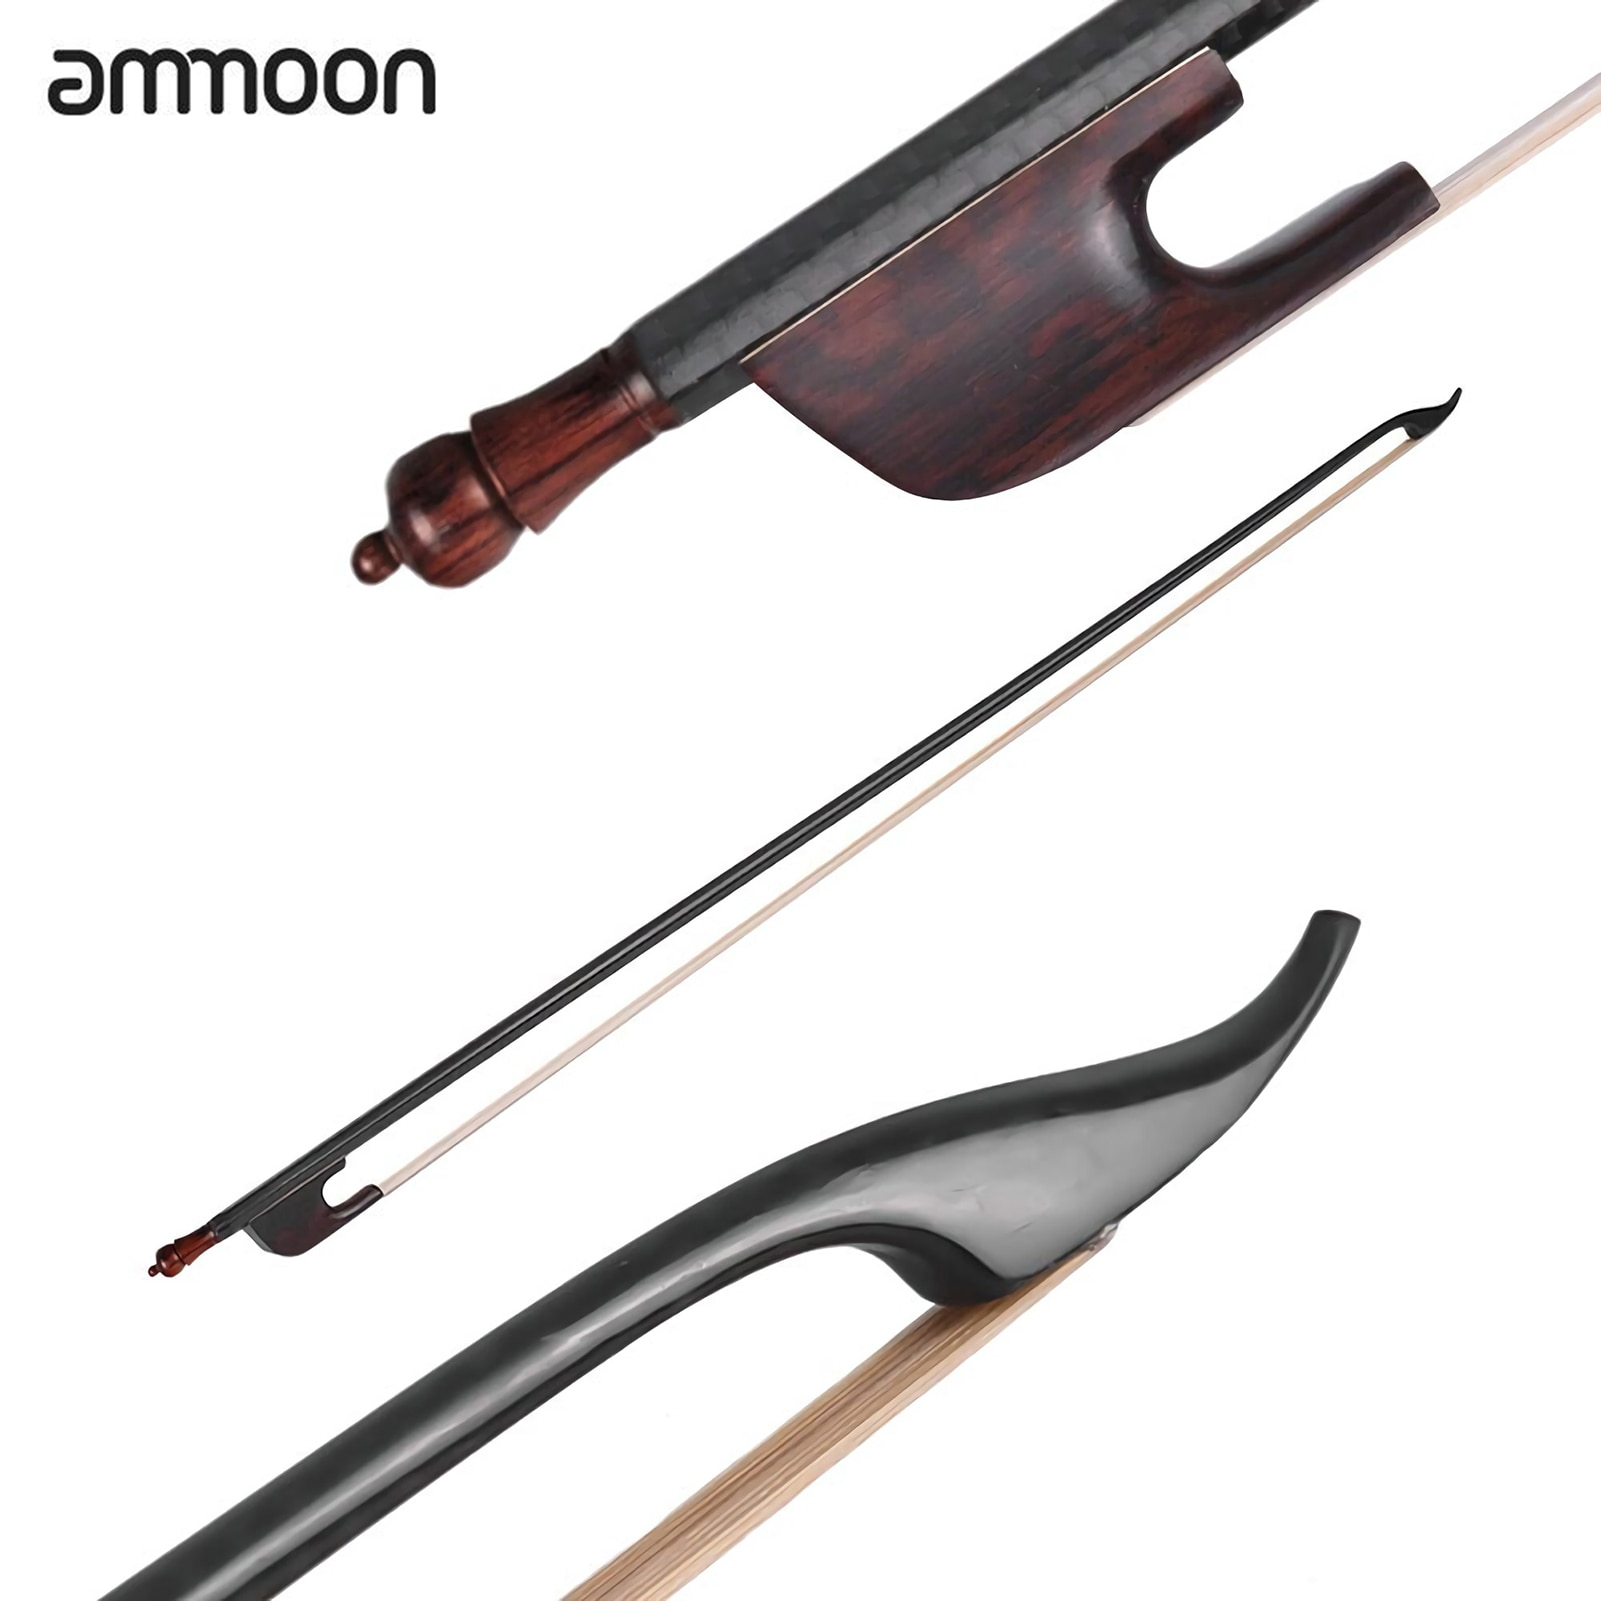 ammoon Violin Bow Baroque Style 4/4 Violin Fiddle Bow Carbon Fiber Round Stick Snakewood End White Horsehair Well Balanced